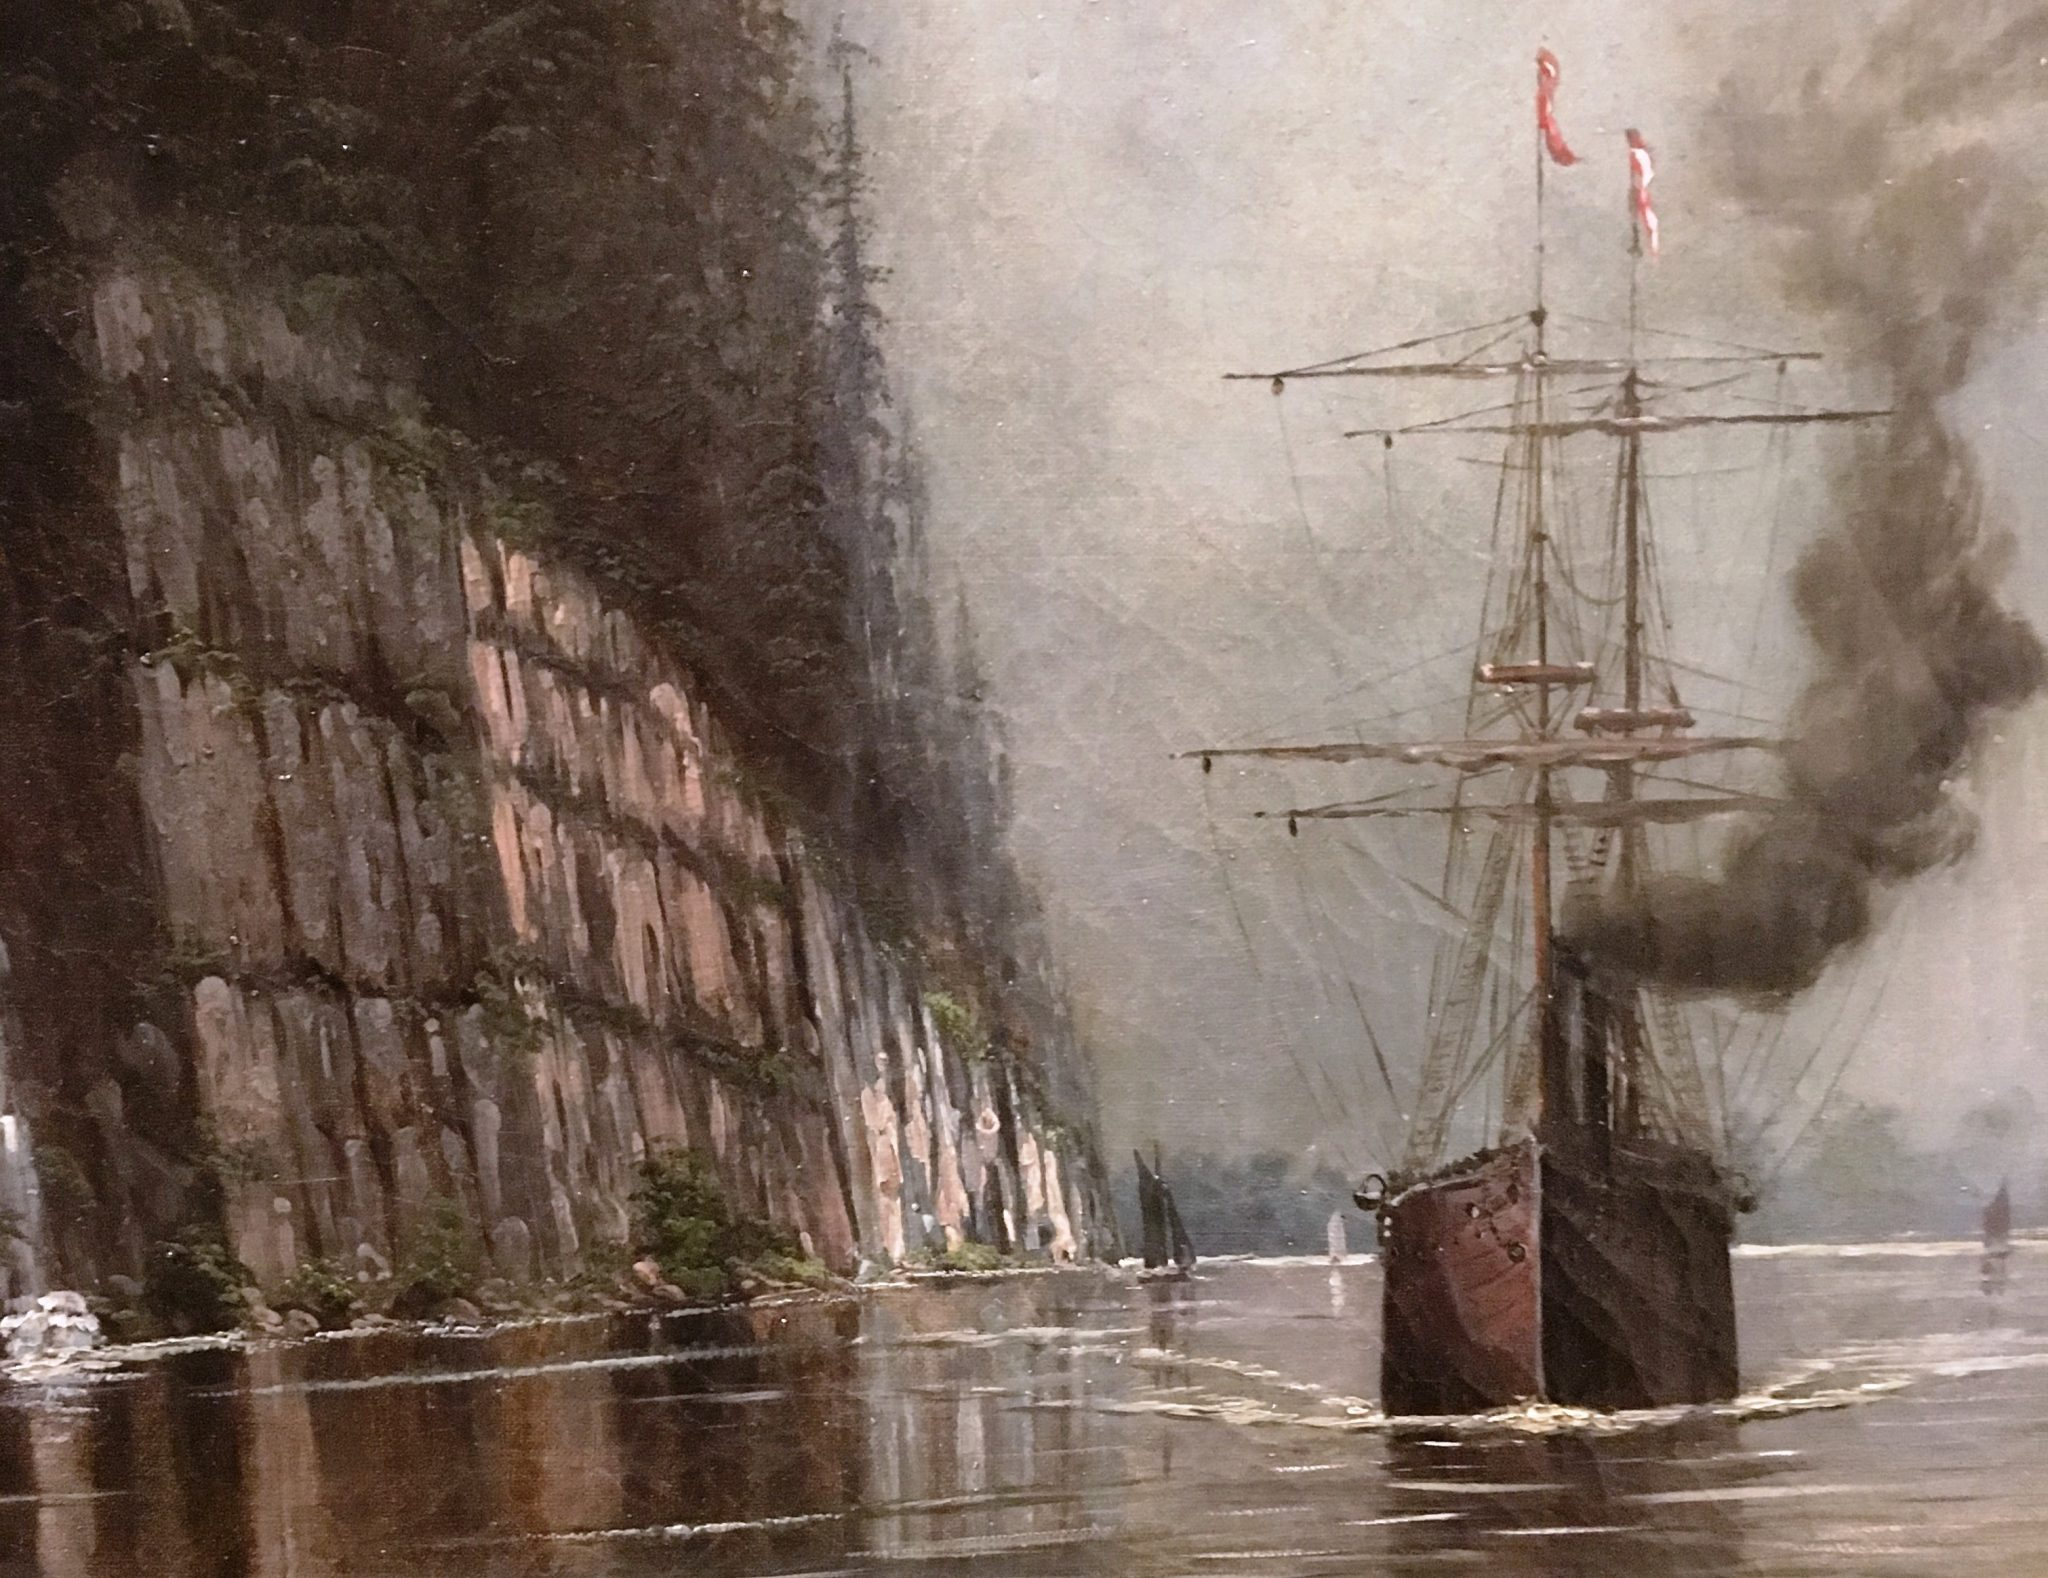 GREAT-LAKES-SHIP-CROPPED-